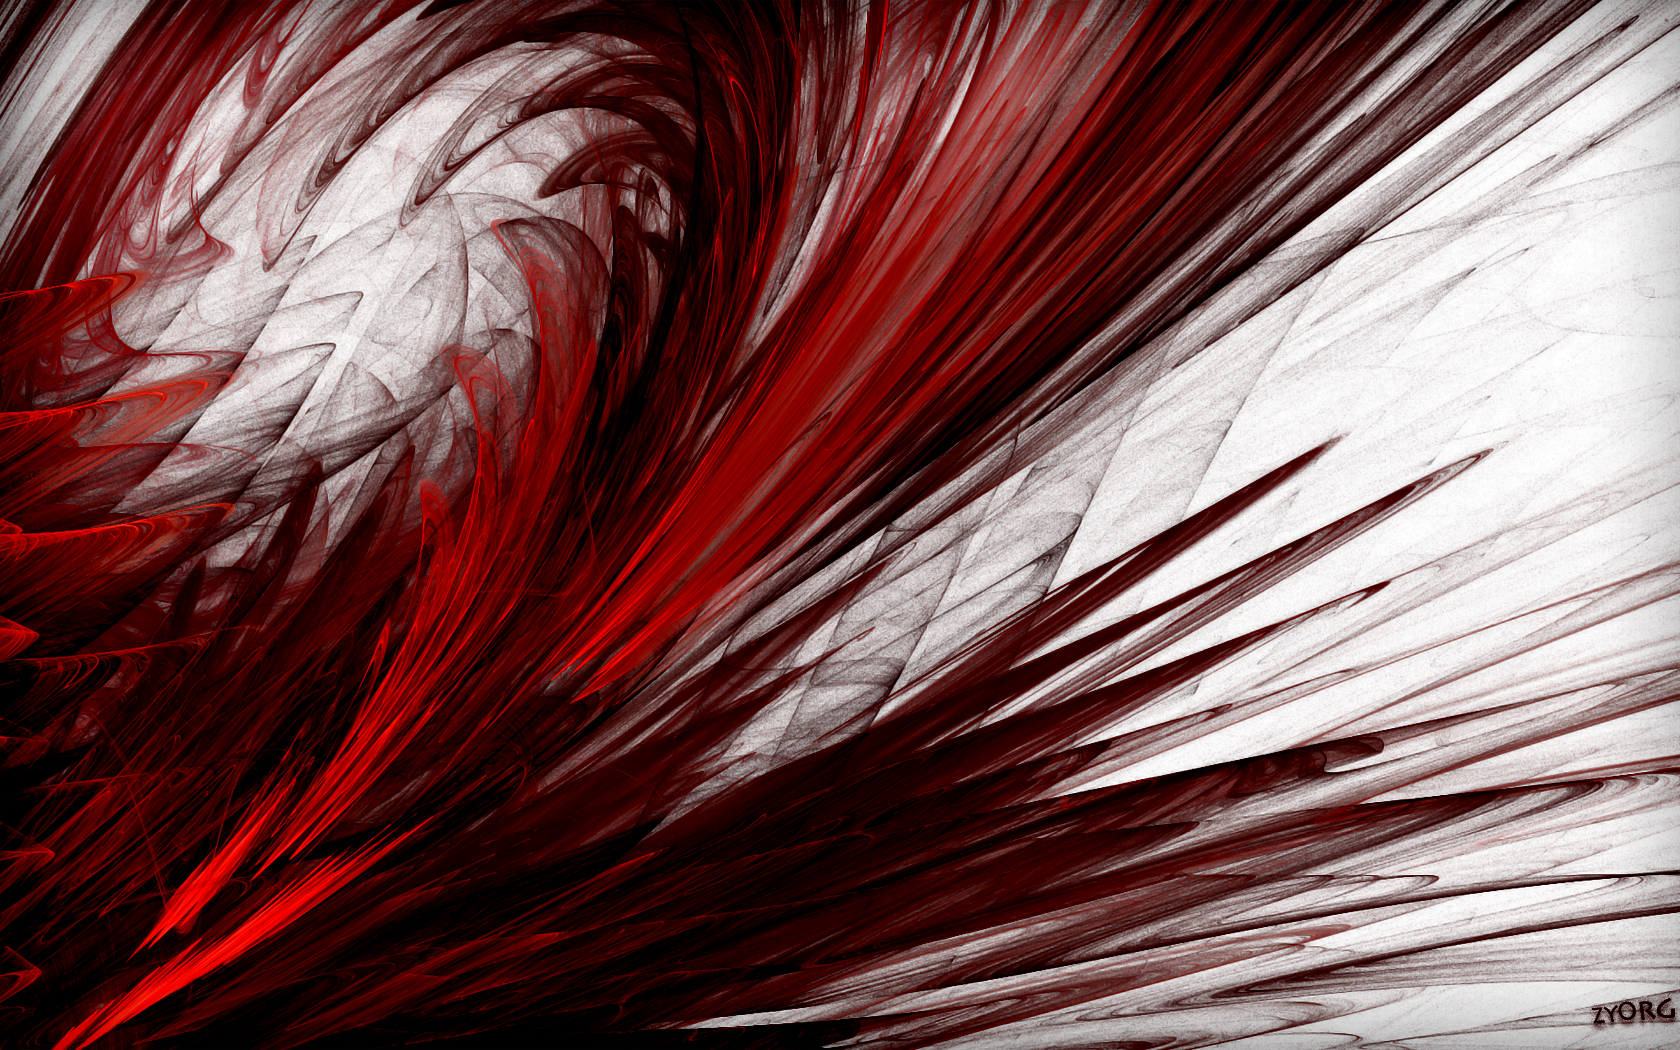 Blood Splatter by zy0rg on DeviantArt